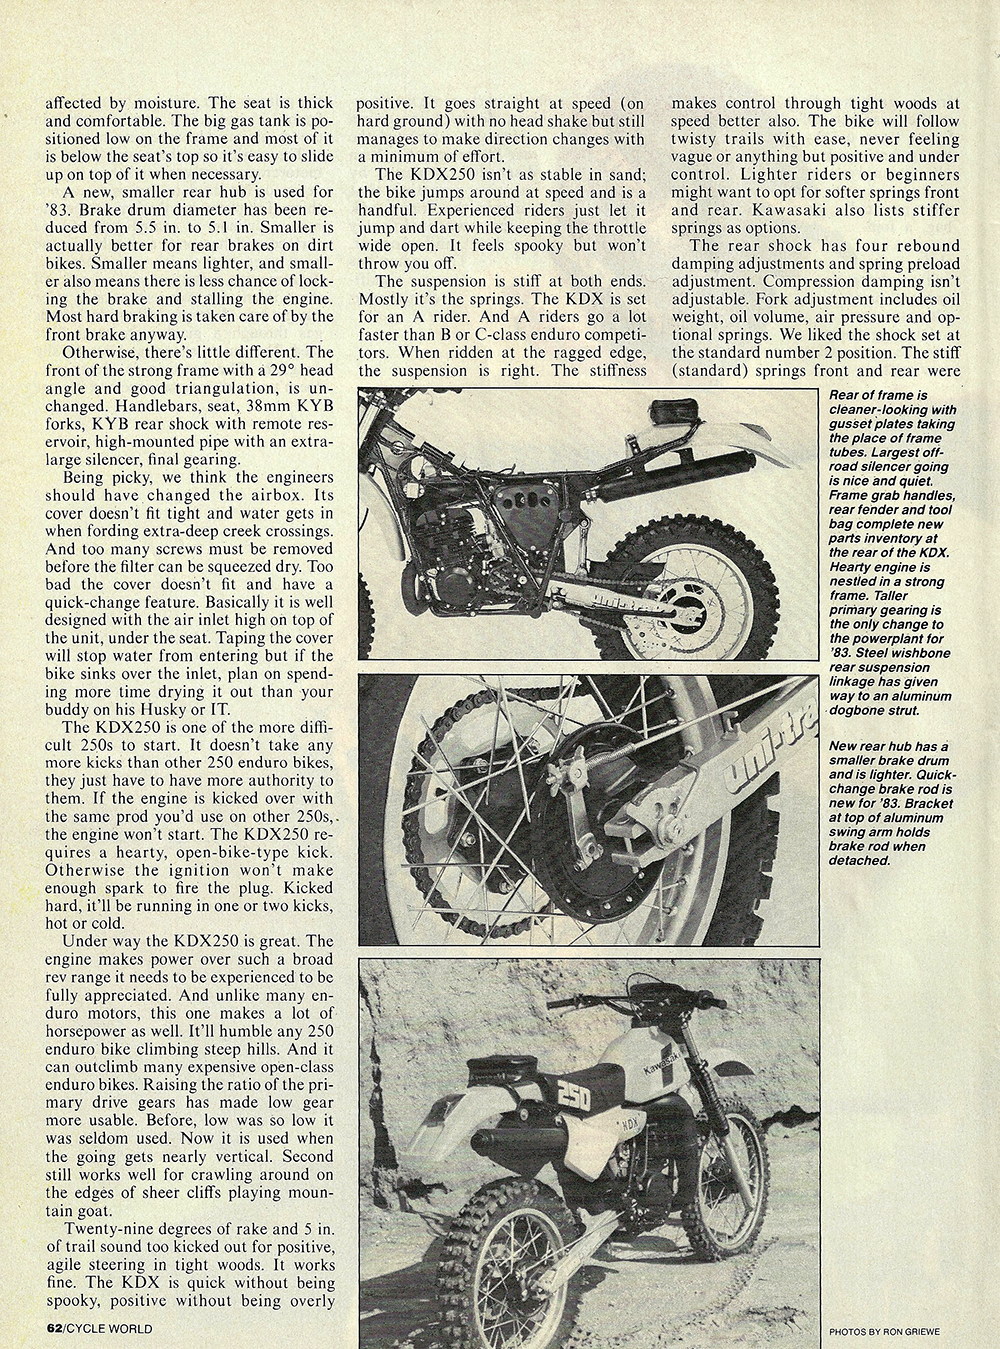 1983 Kawasaki kdx250 road test 03.jpg